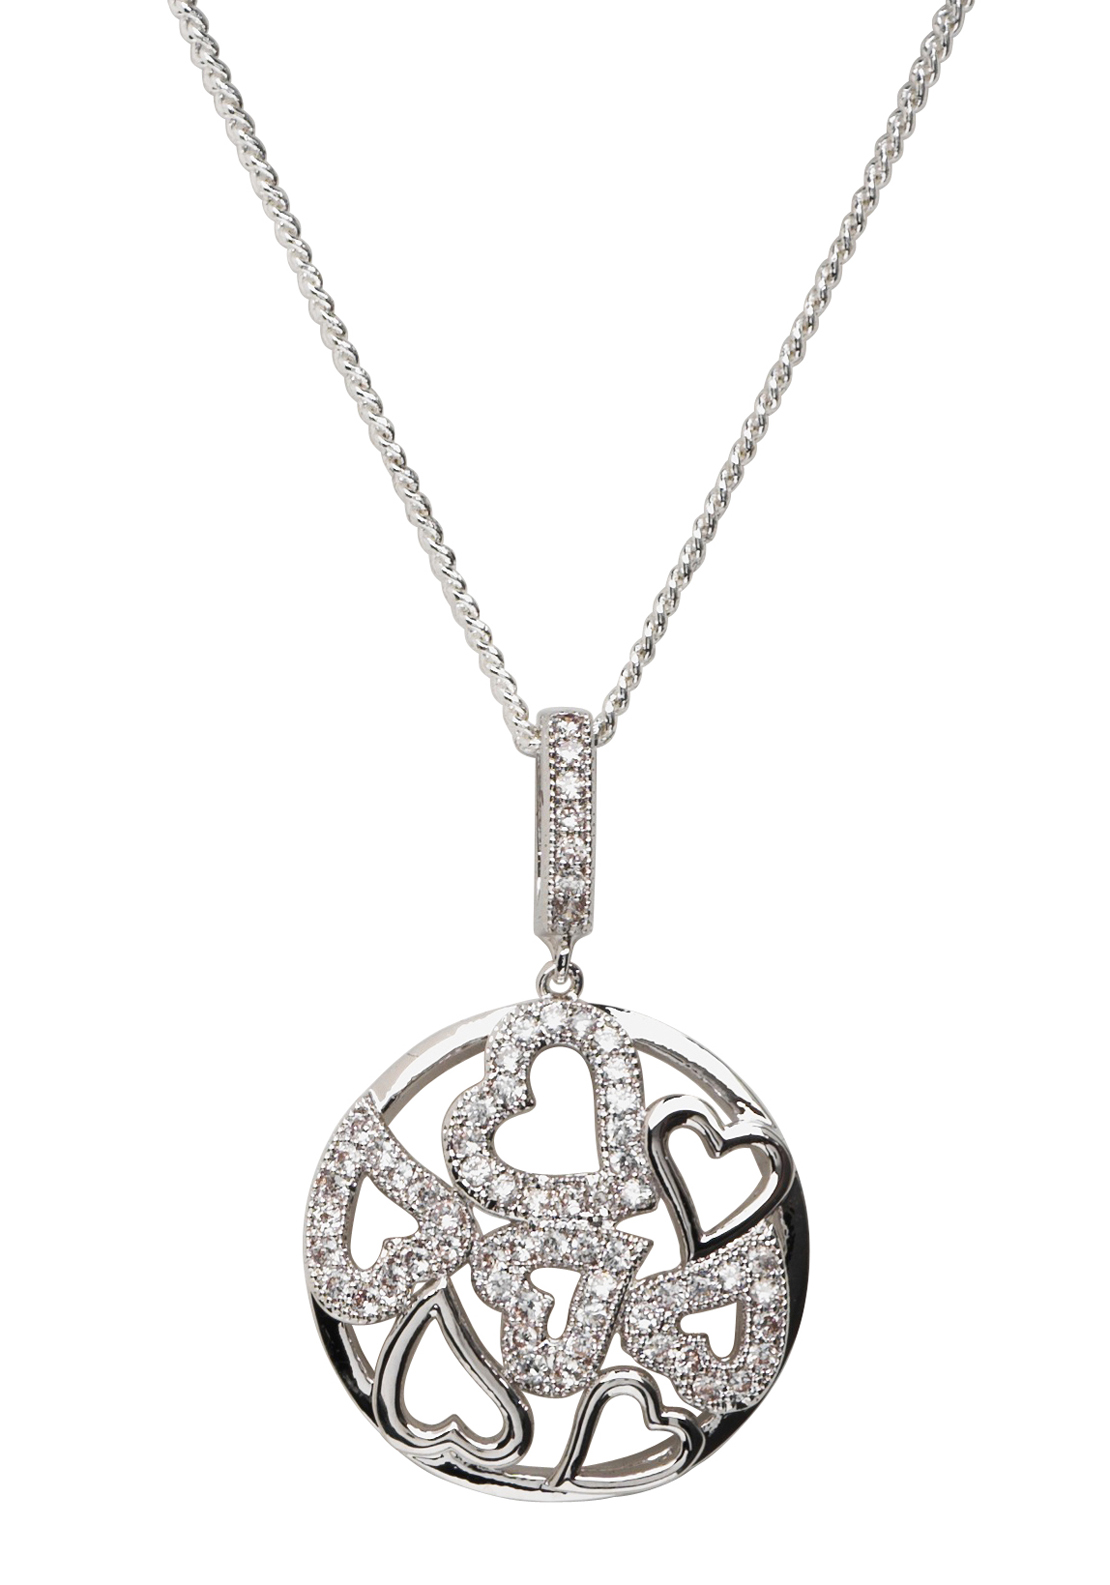 Killarney Crystal Elements of Love Pendant